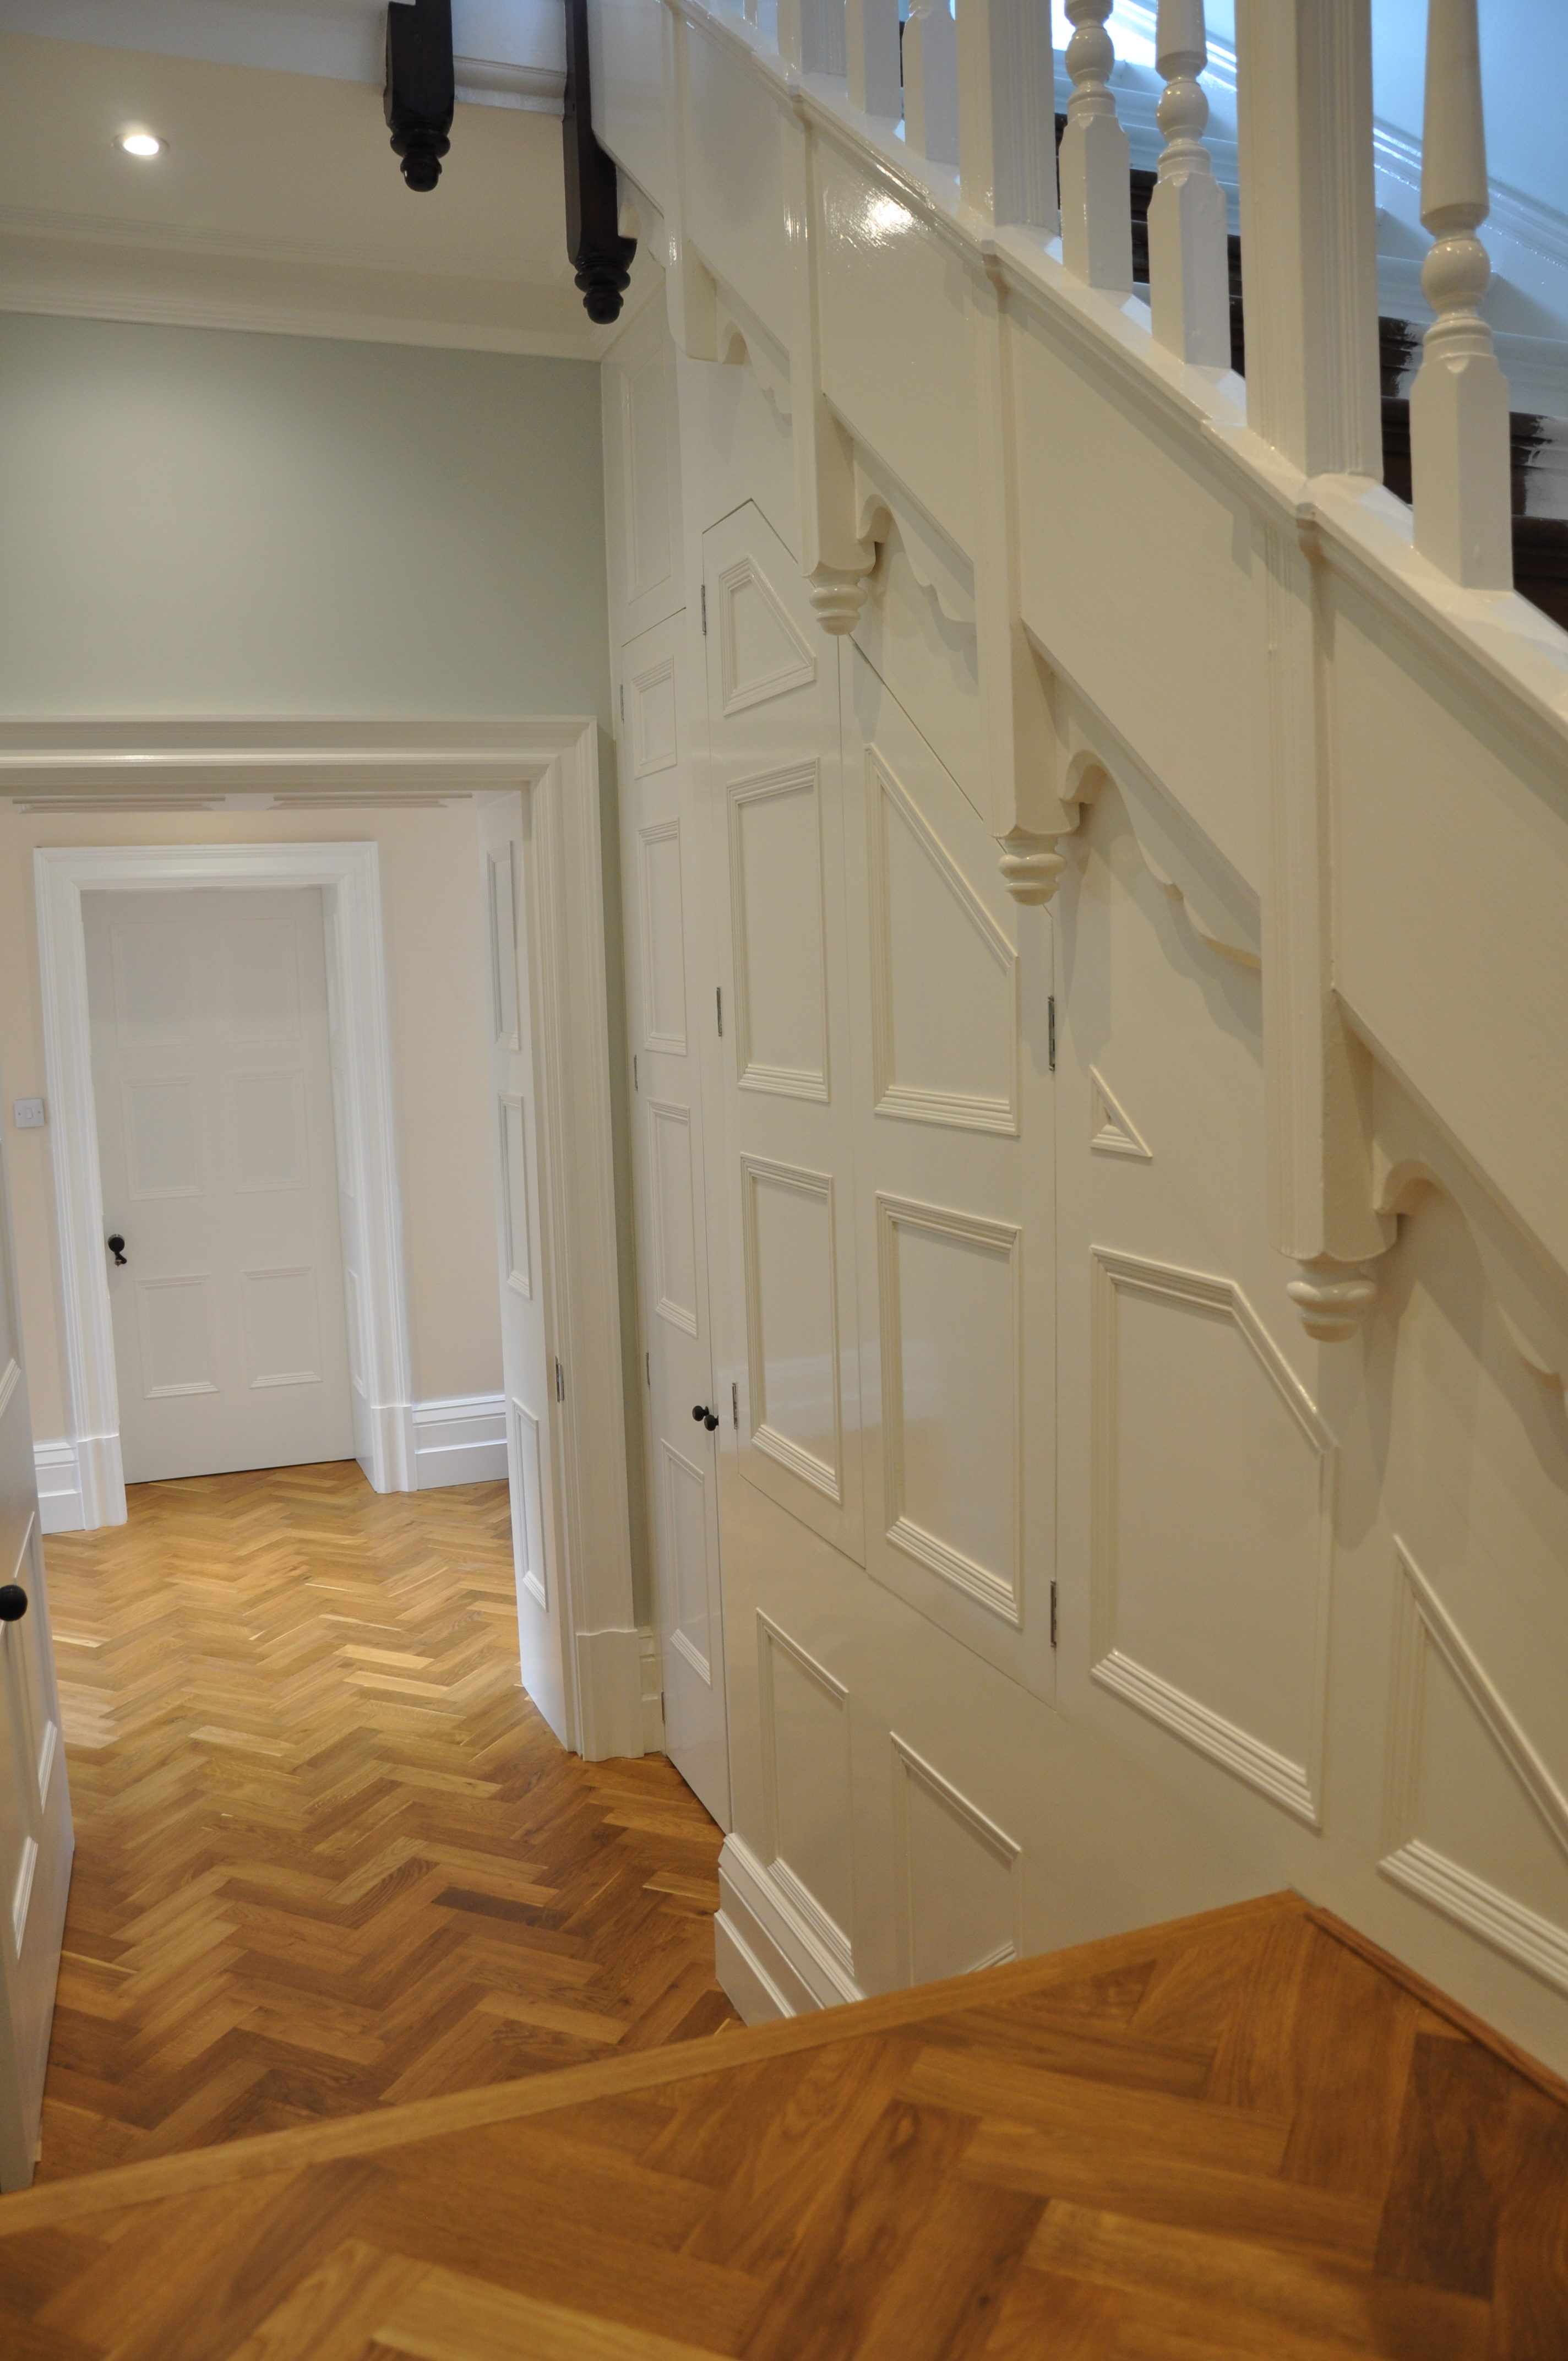 Bespoke panelling and parquet floor